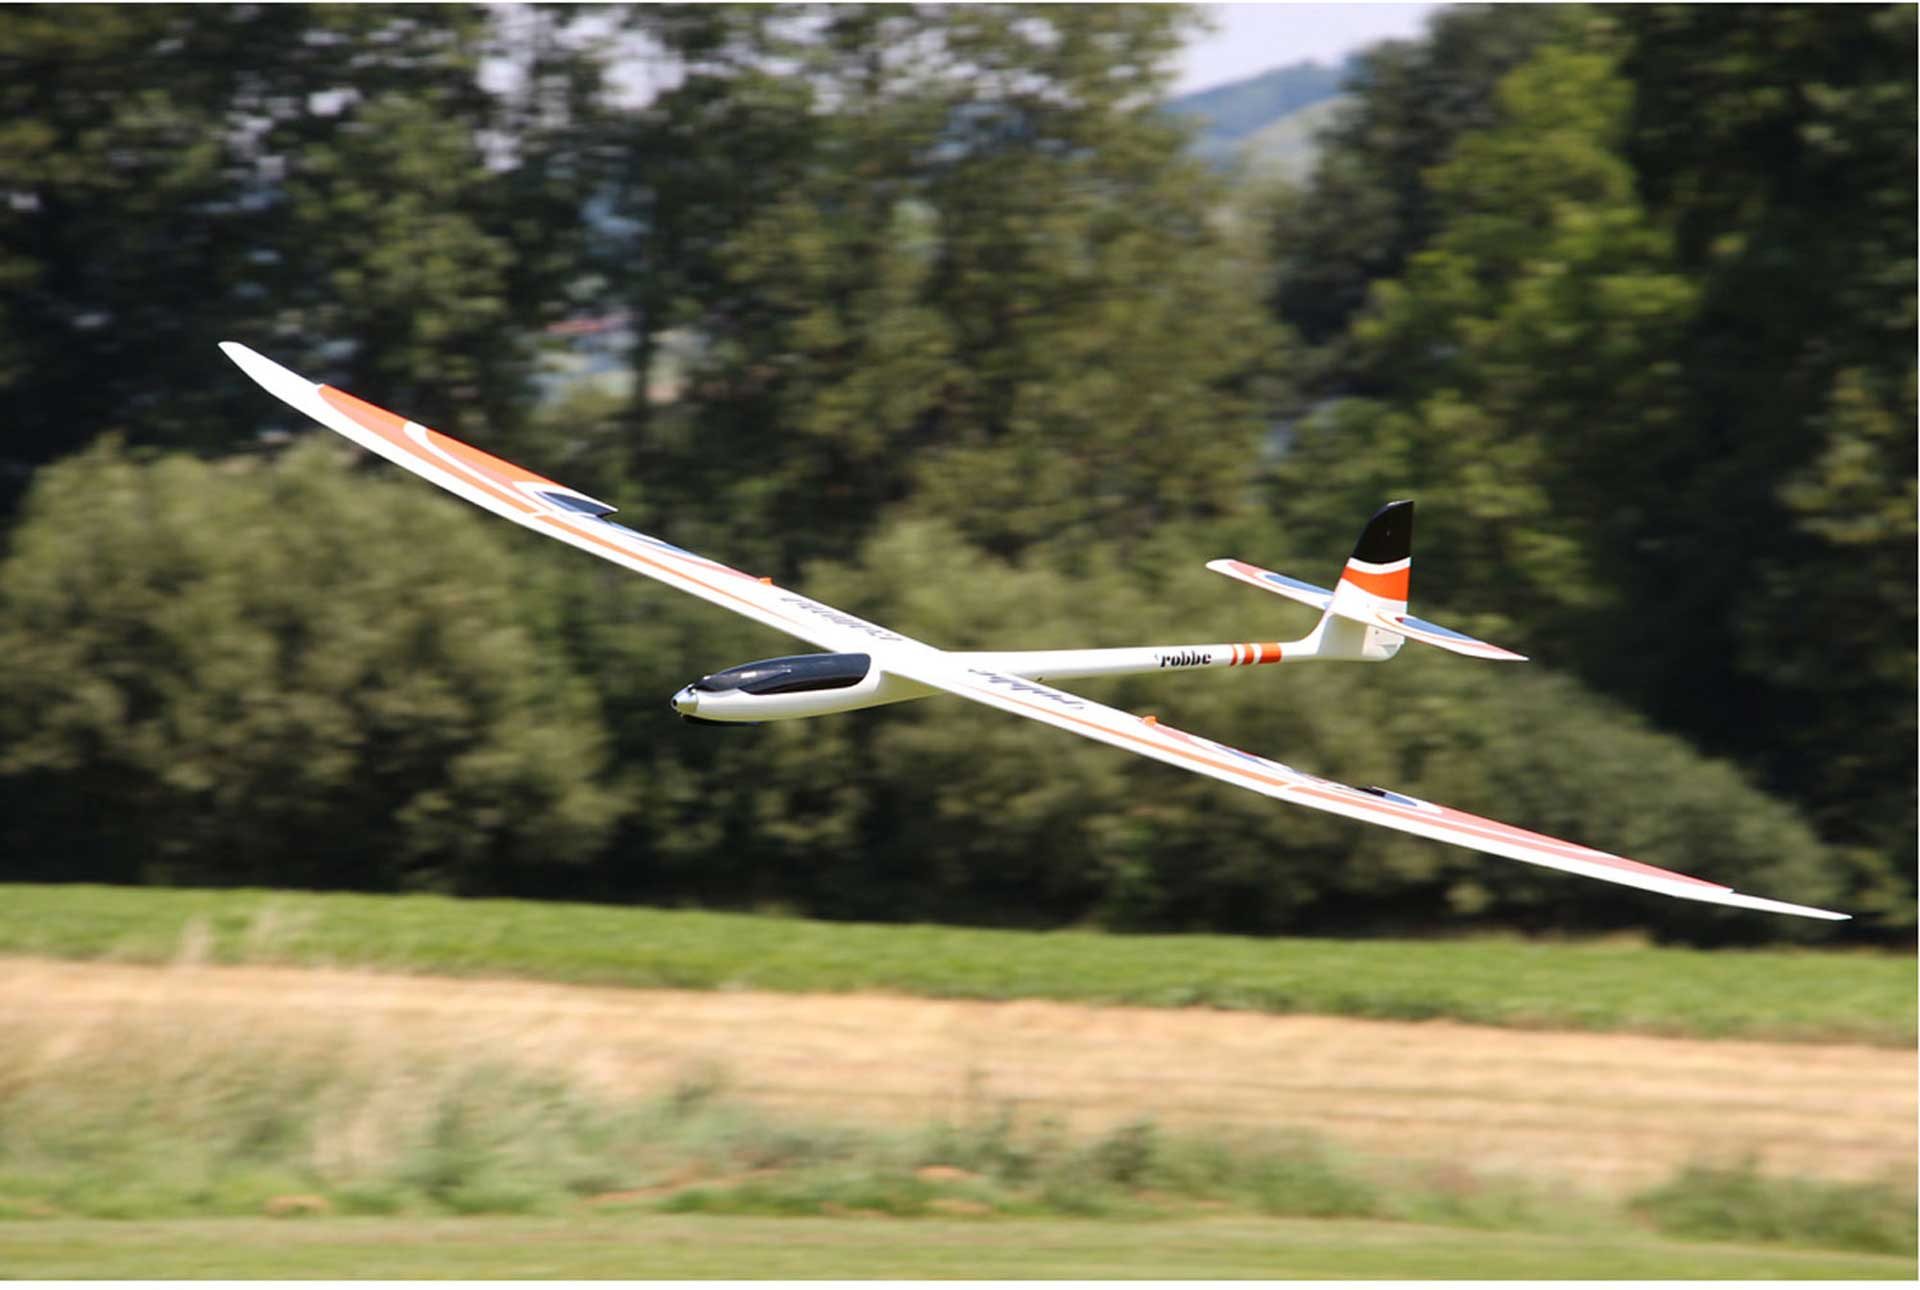 ROBBE CALIMA ARF HIGH PERFORMANCE CONTROLLER WITH 4-FLAP WINGS